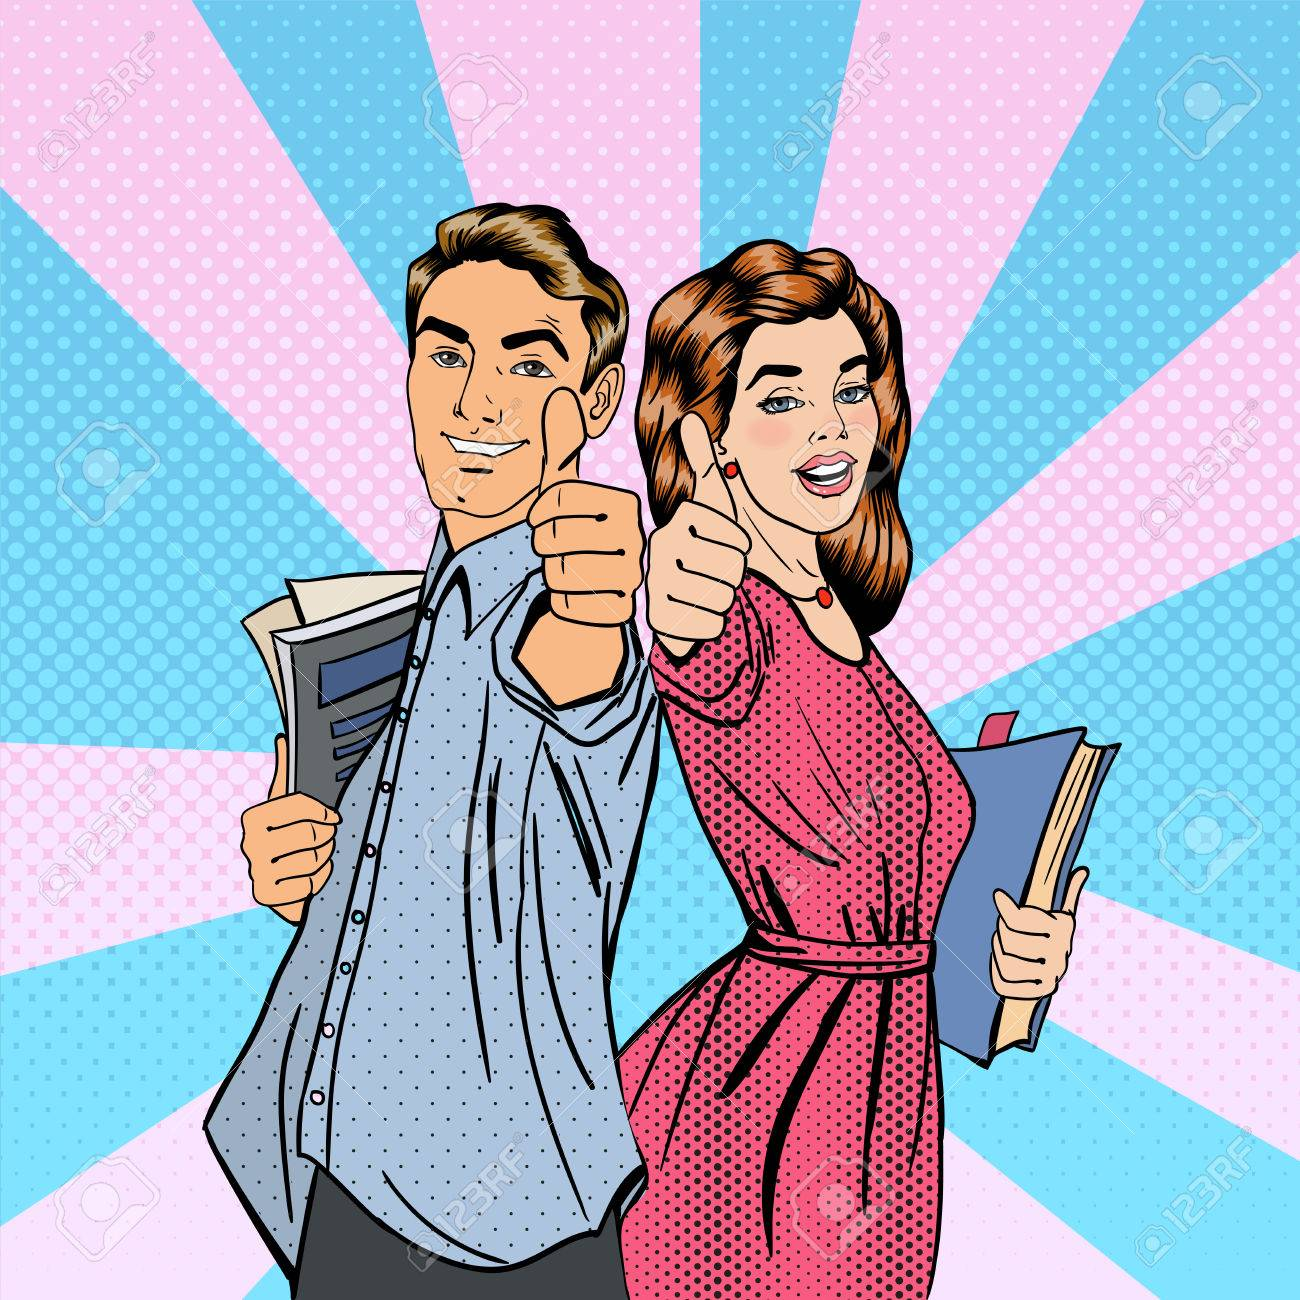 Couple of Students. Man and Woman Gesturing Great. Students with Books. Educational Concept. Pop Art. Vector illustration - 56555330